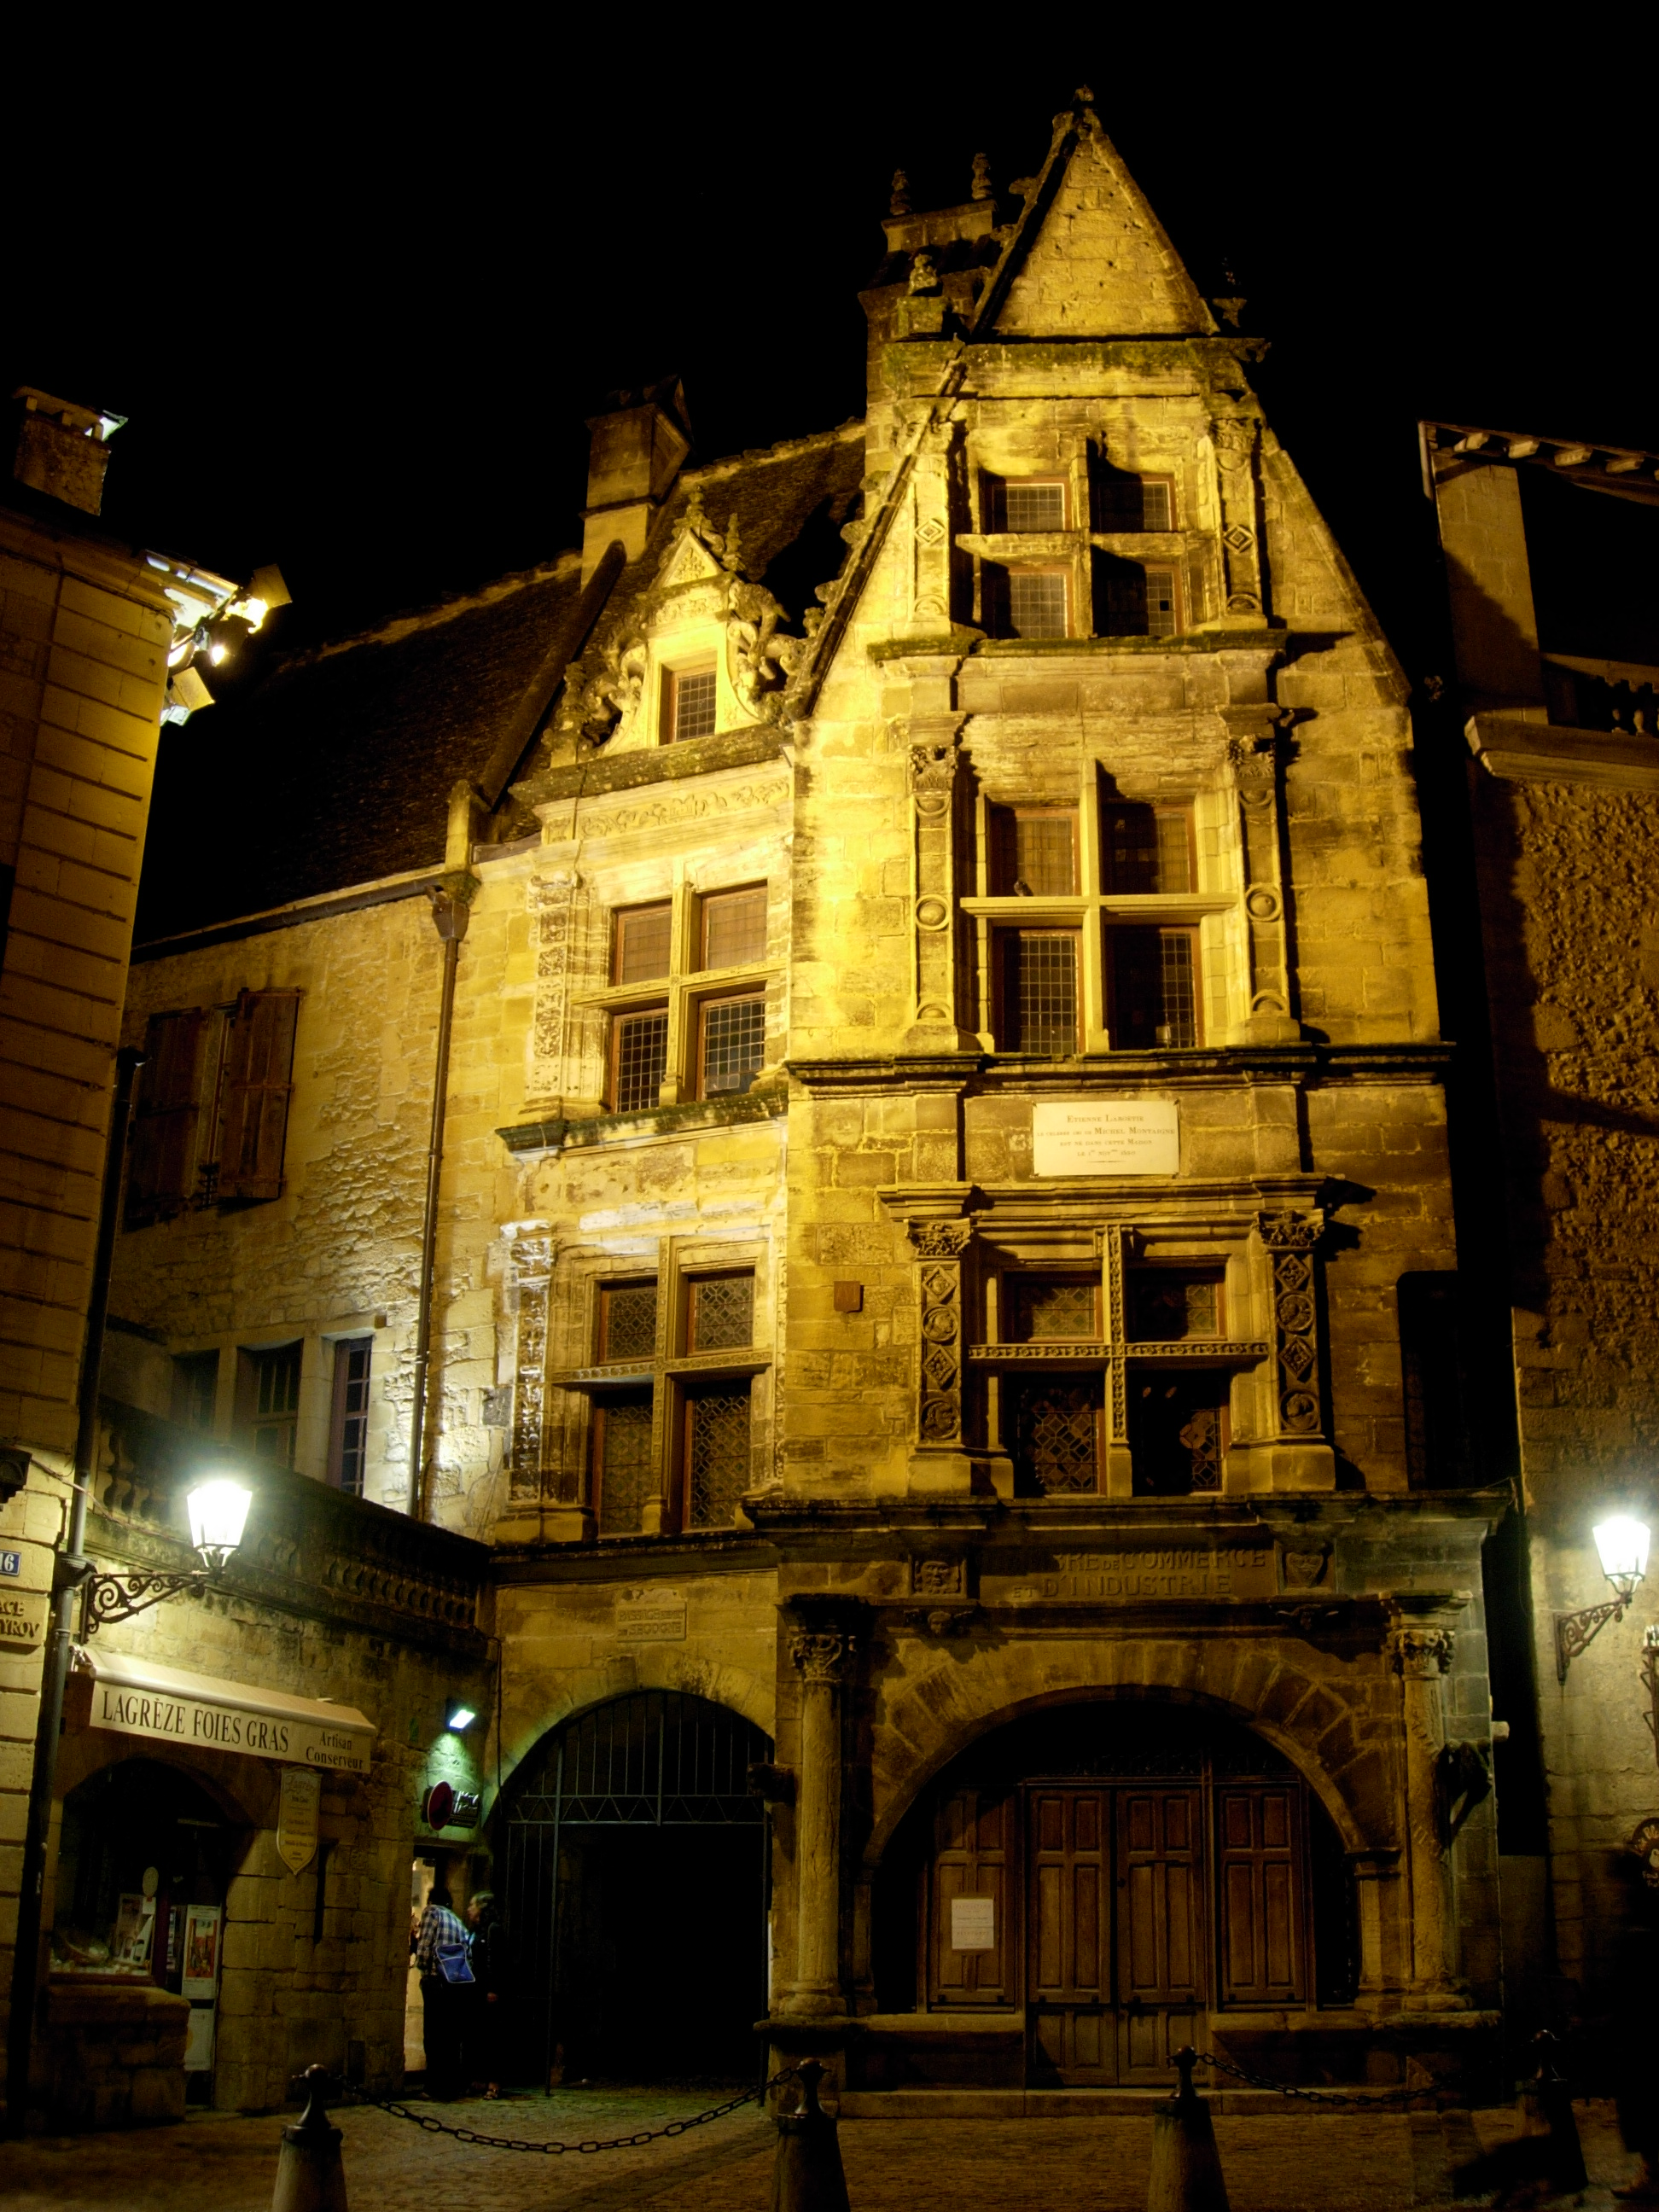 File:Sarlat-medieval-city-by-night-13.jpg - Wikimedia Commons